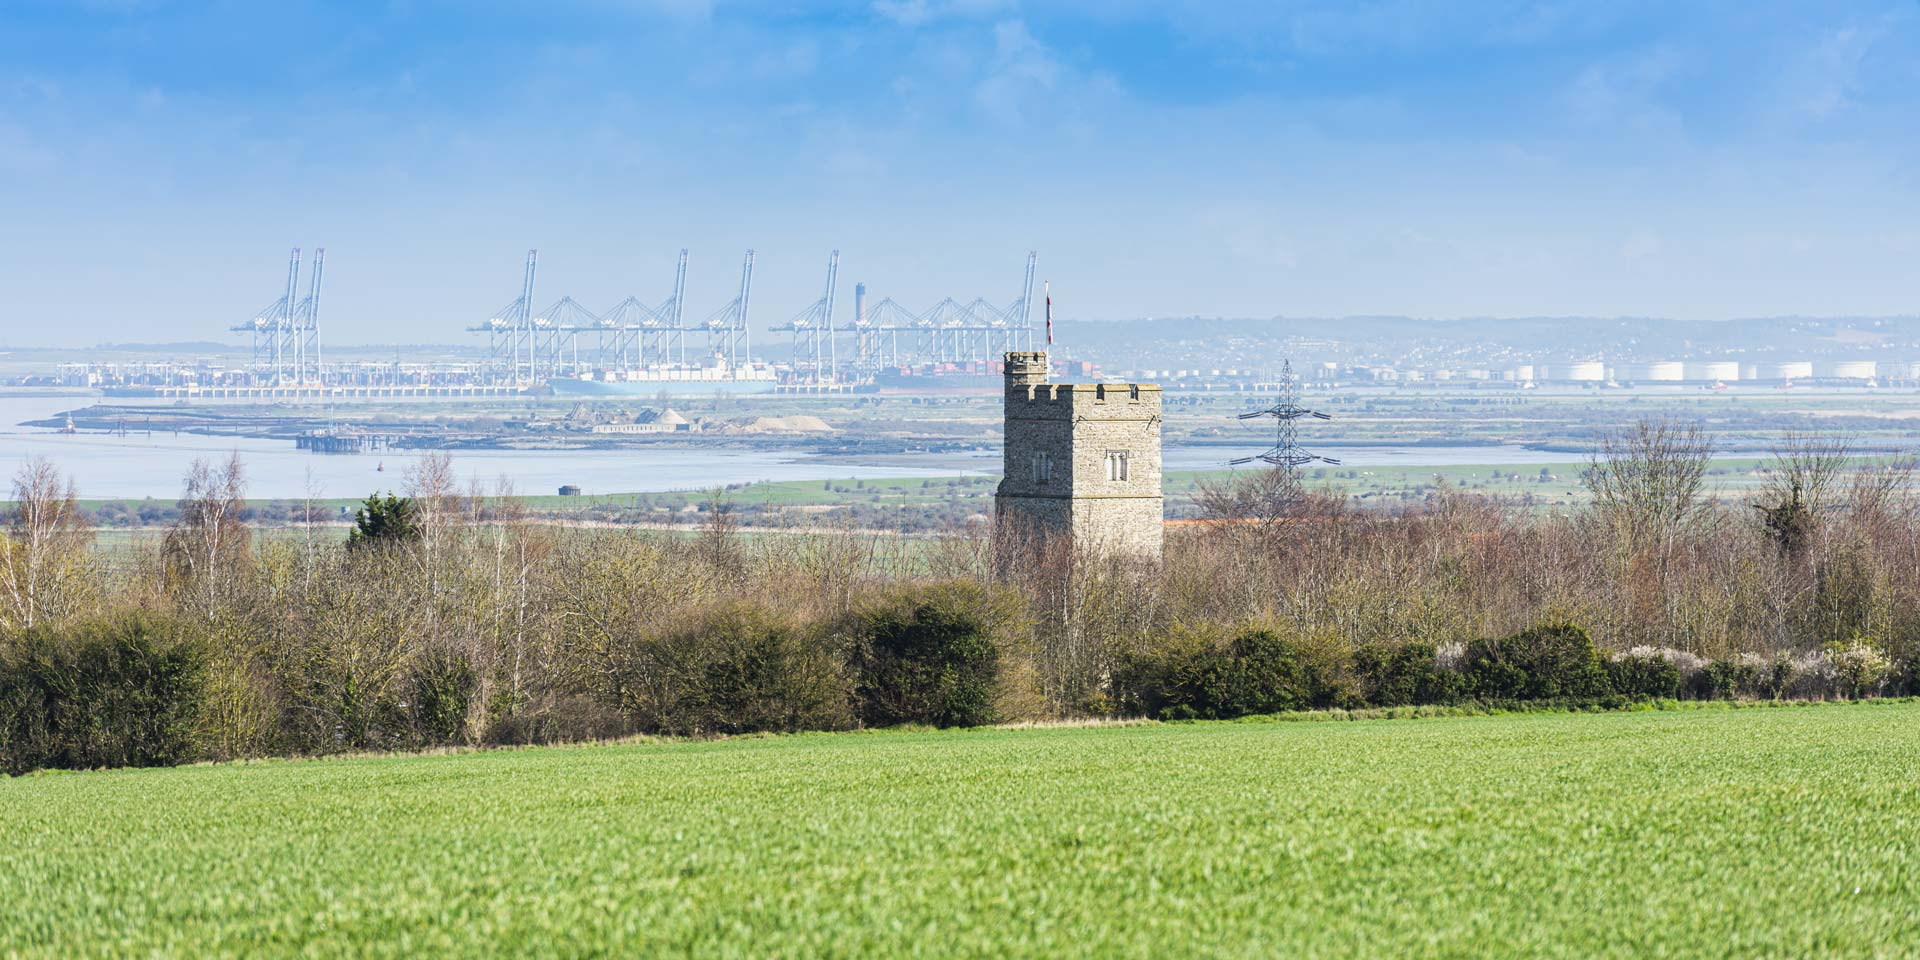 St Mary's Church in Chalk near Gravesend in Kent, England. Thames estuary and Essex can be seen in the distance